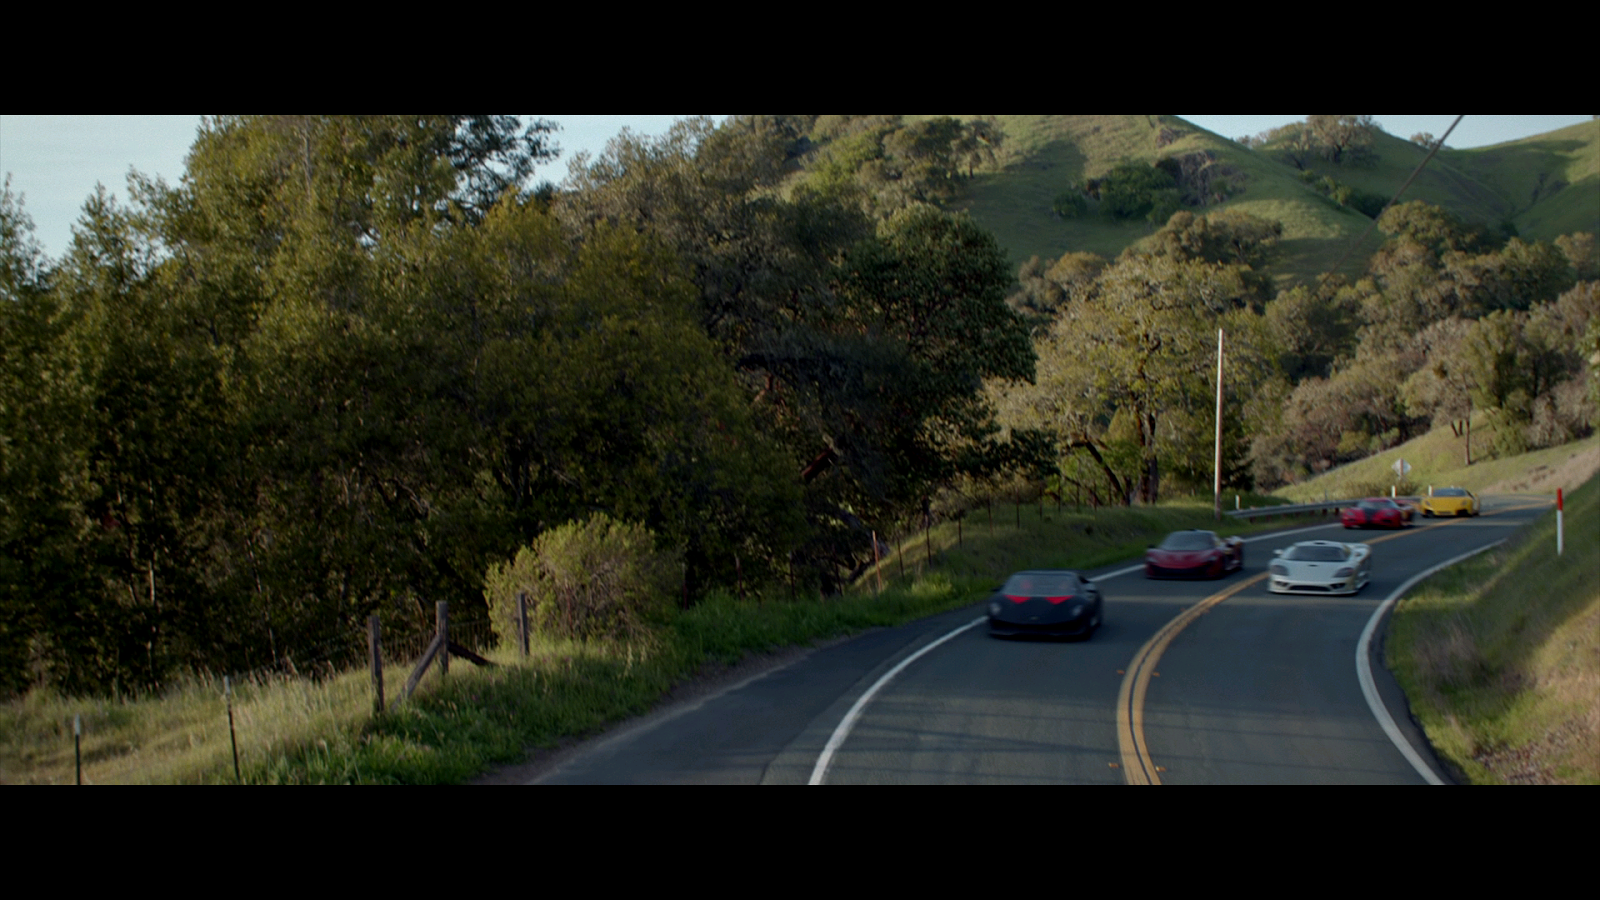 Need For Speed (2014) 1080p BD25 REPACK 8